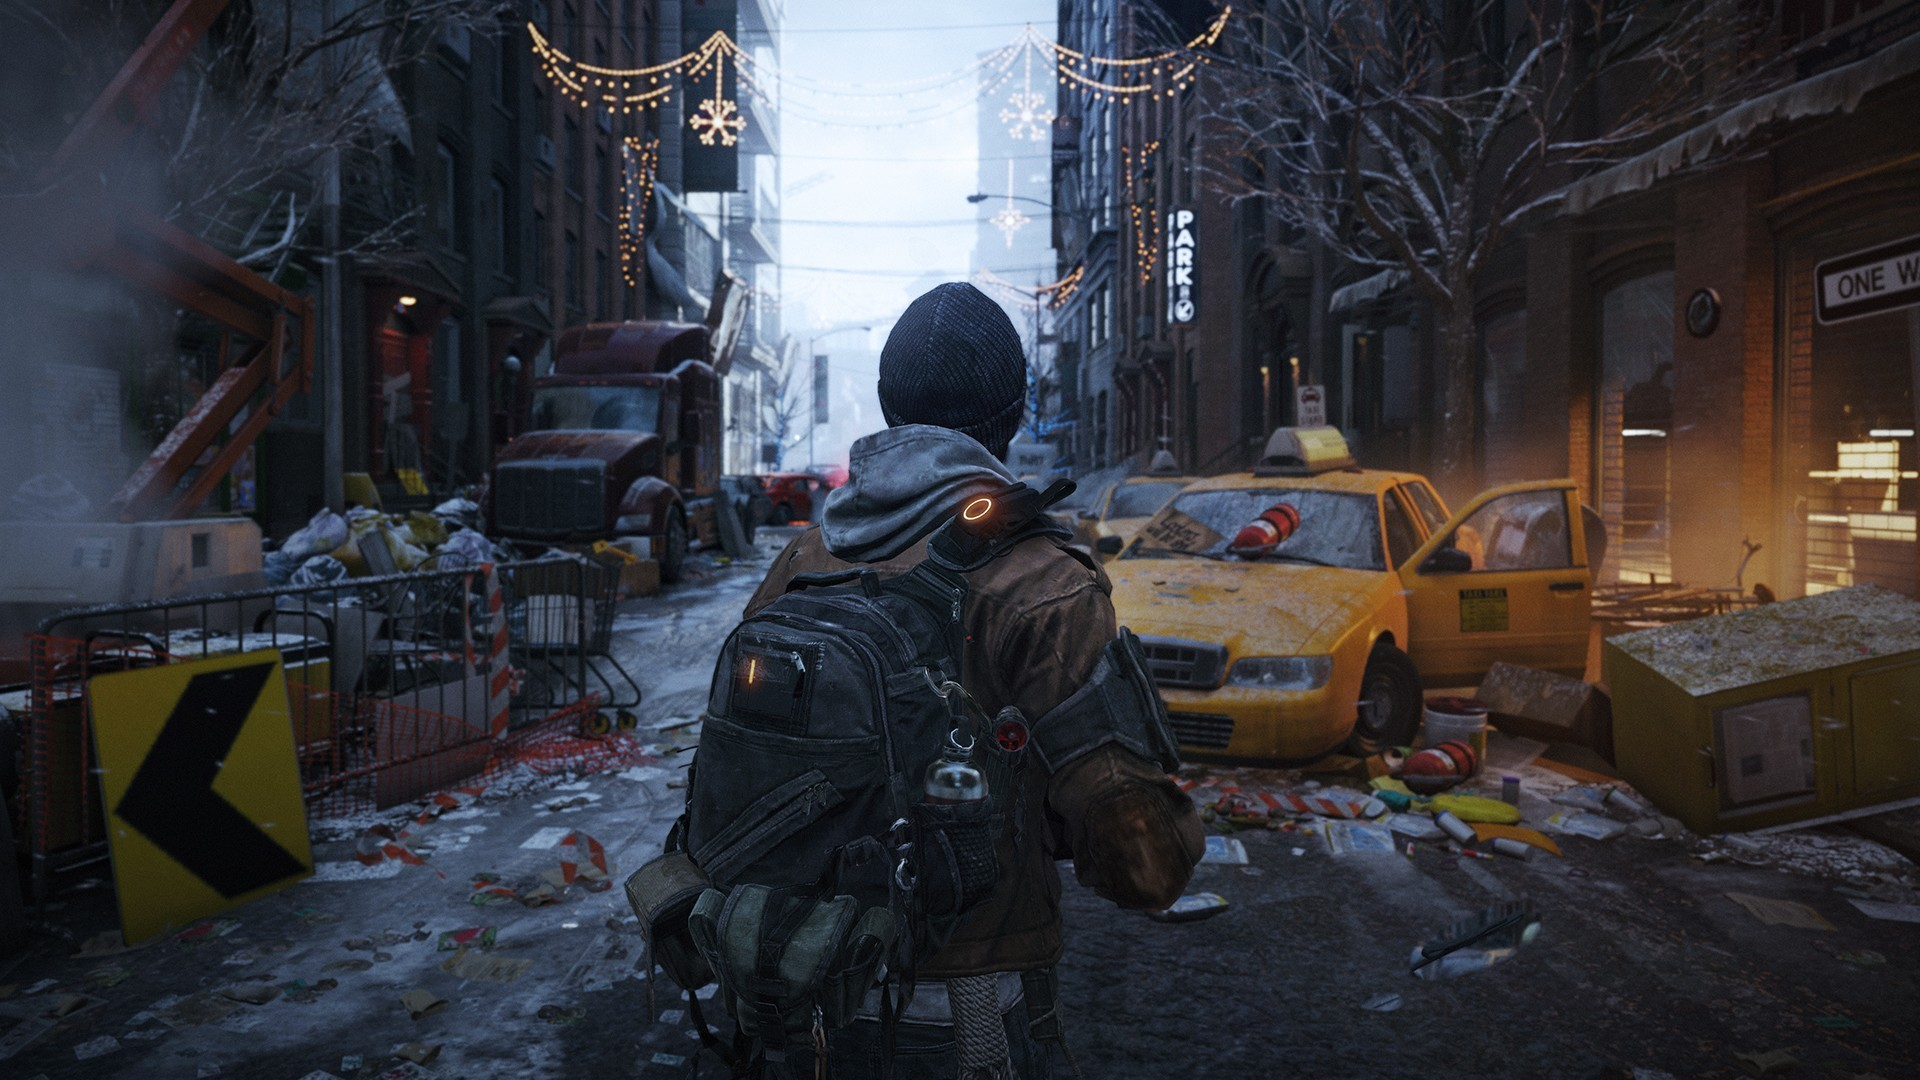 Tom Clancys The Division HD Wallpaper 1920x1080 1920x1080